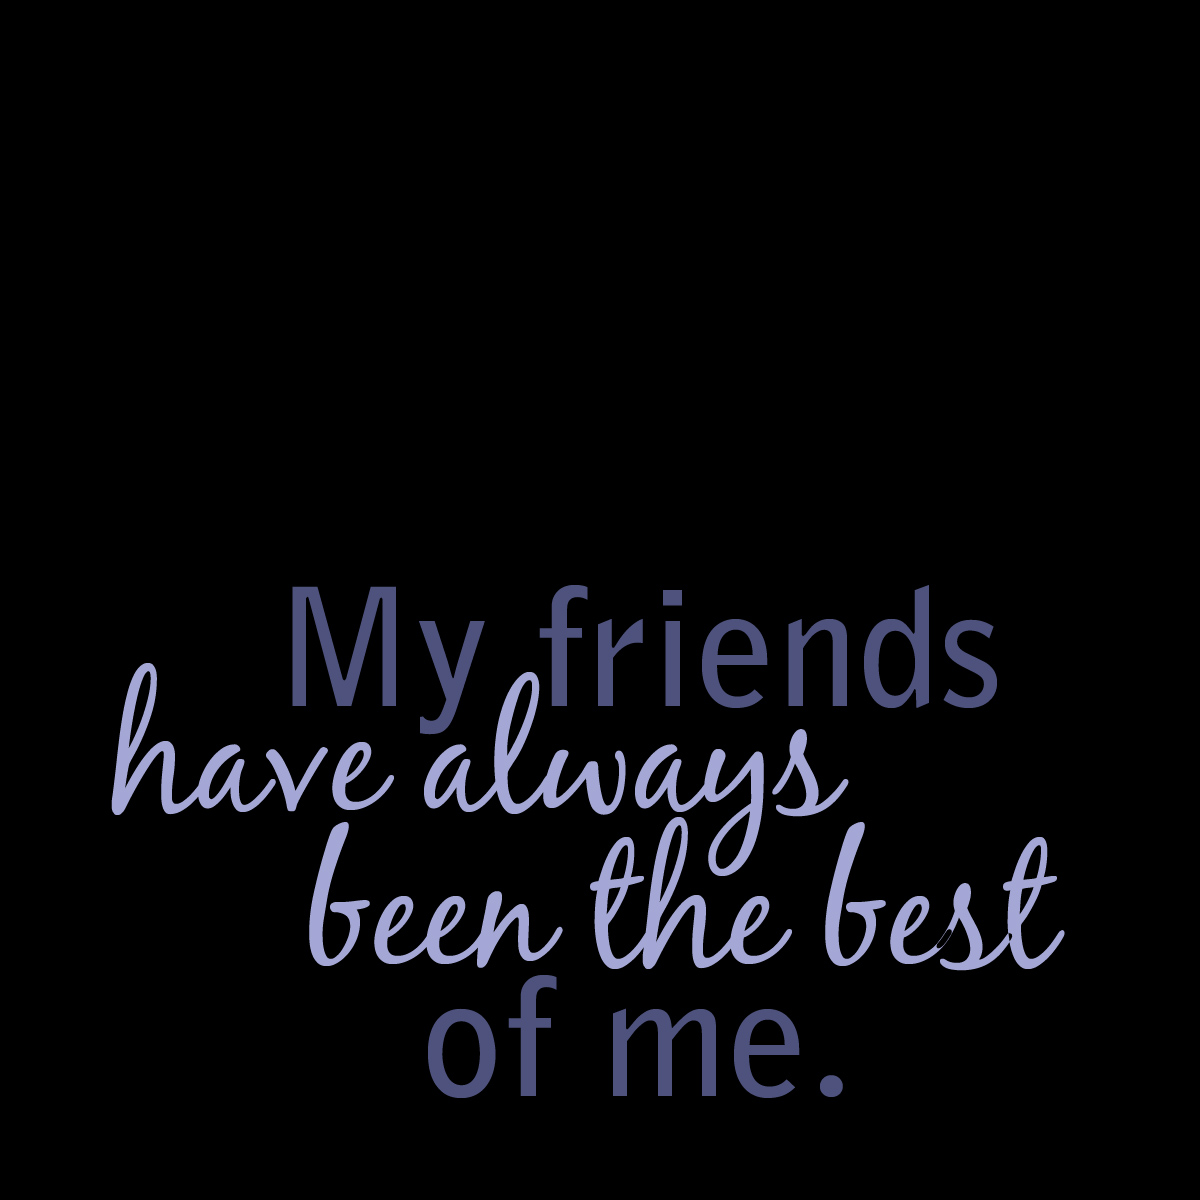 Famous Quote About Friendship Fair Friendship Hd Image And Quotes Download Friendship Wallpapers And